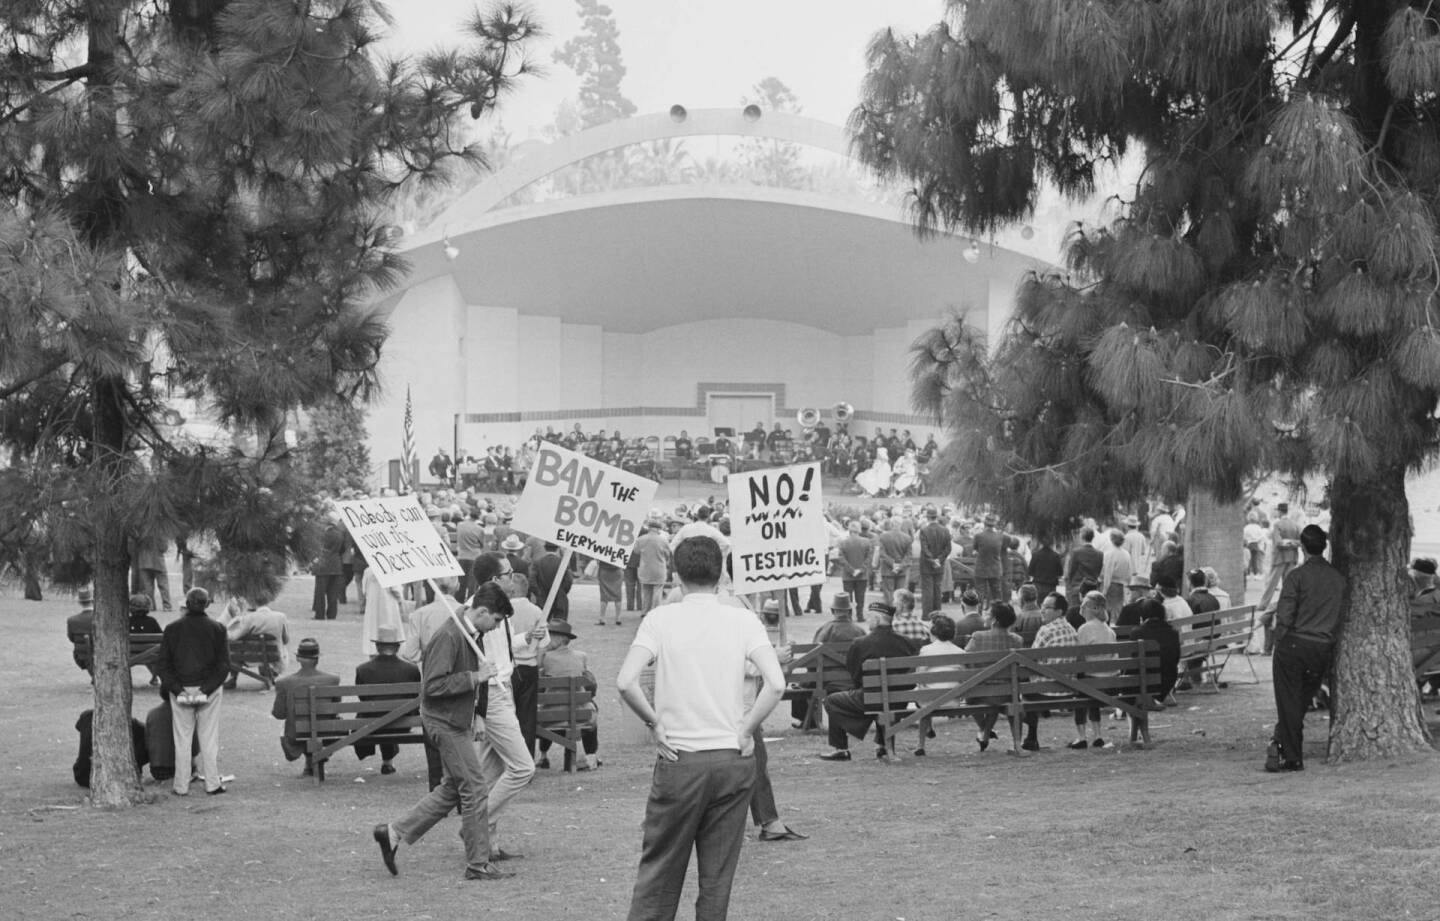 On Veterans Day 1961, the speech by former California Governor Goodwin Knight was interrupted by picketers protesting nuclear arms